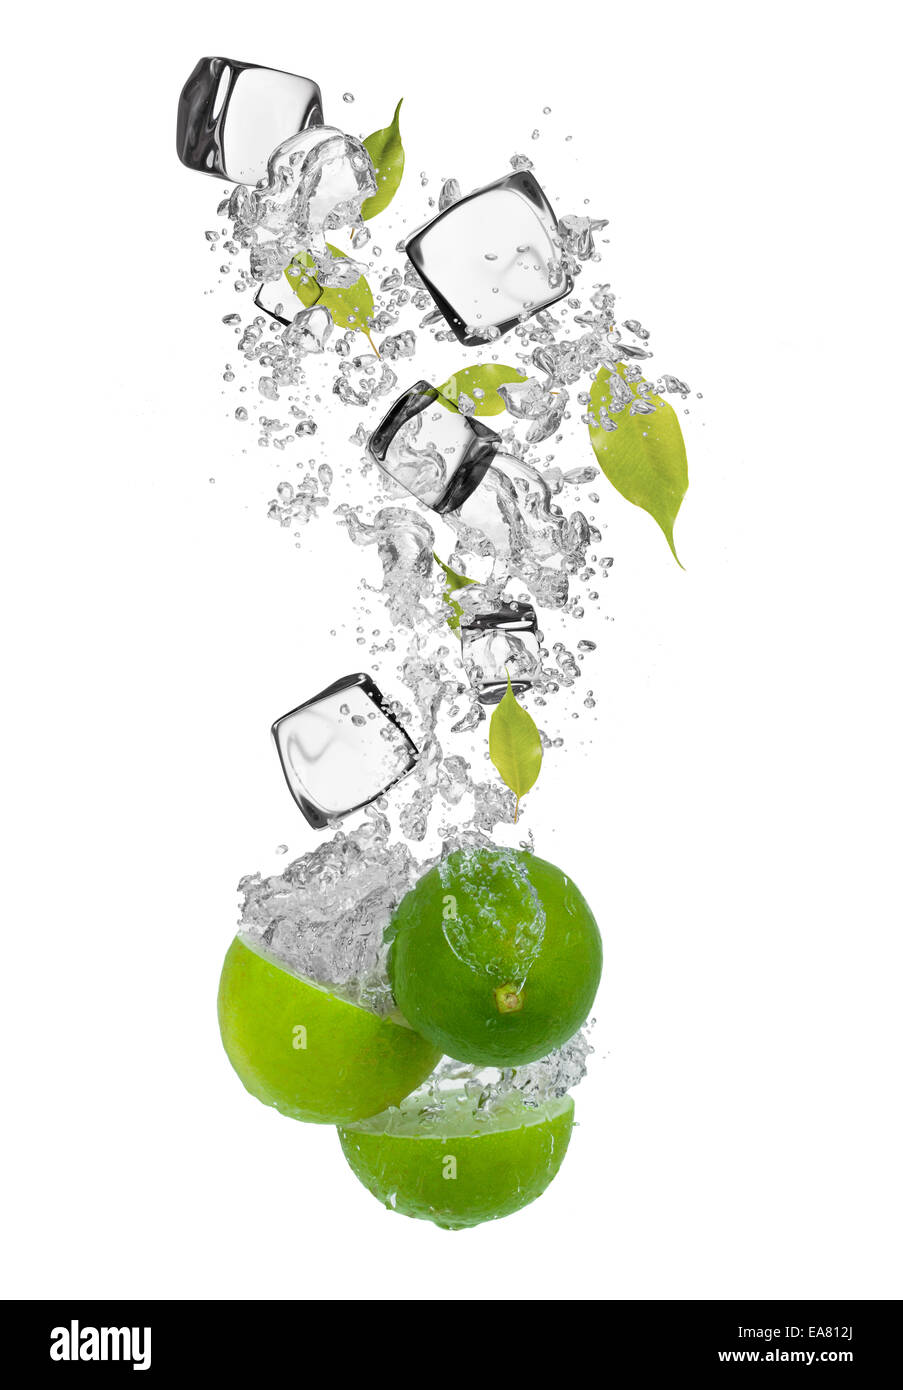 Falling pieces of limes in water splash and ice cubes, isolated on white background Stock Photo